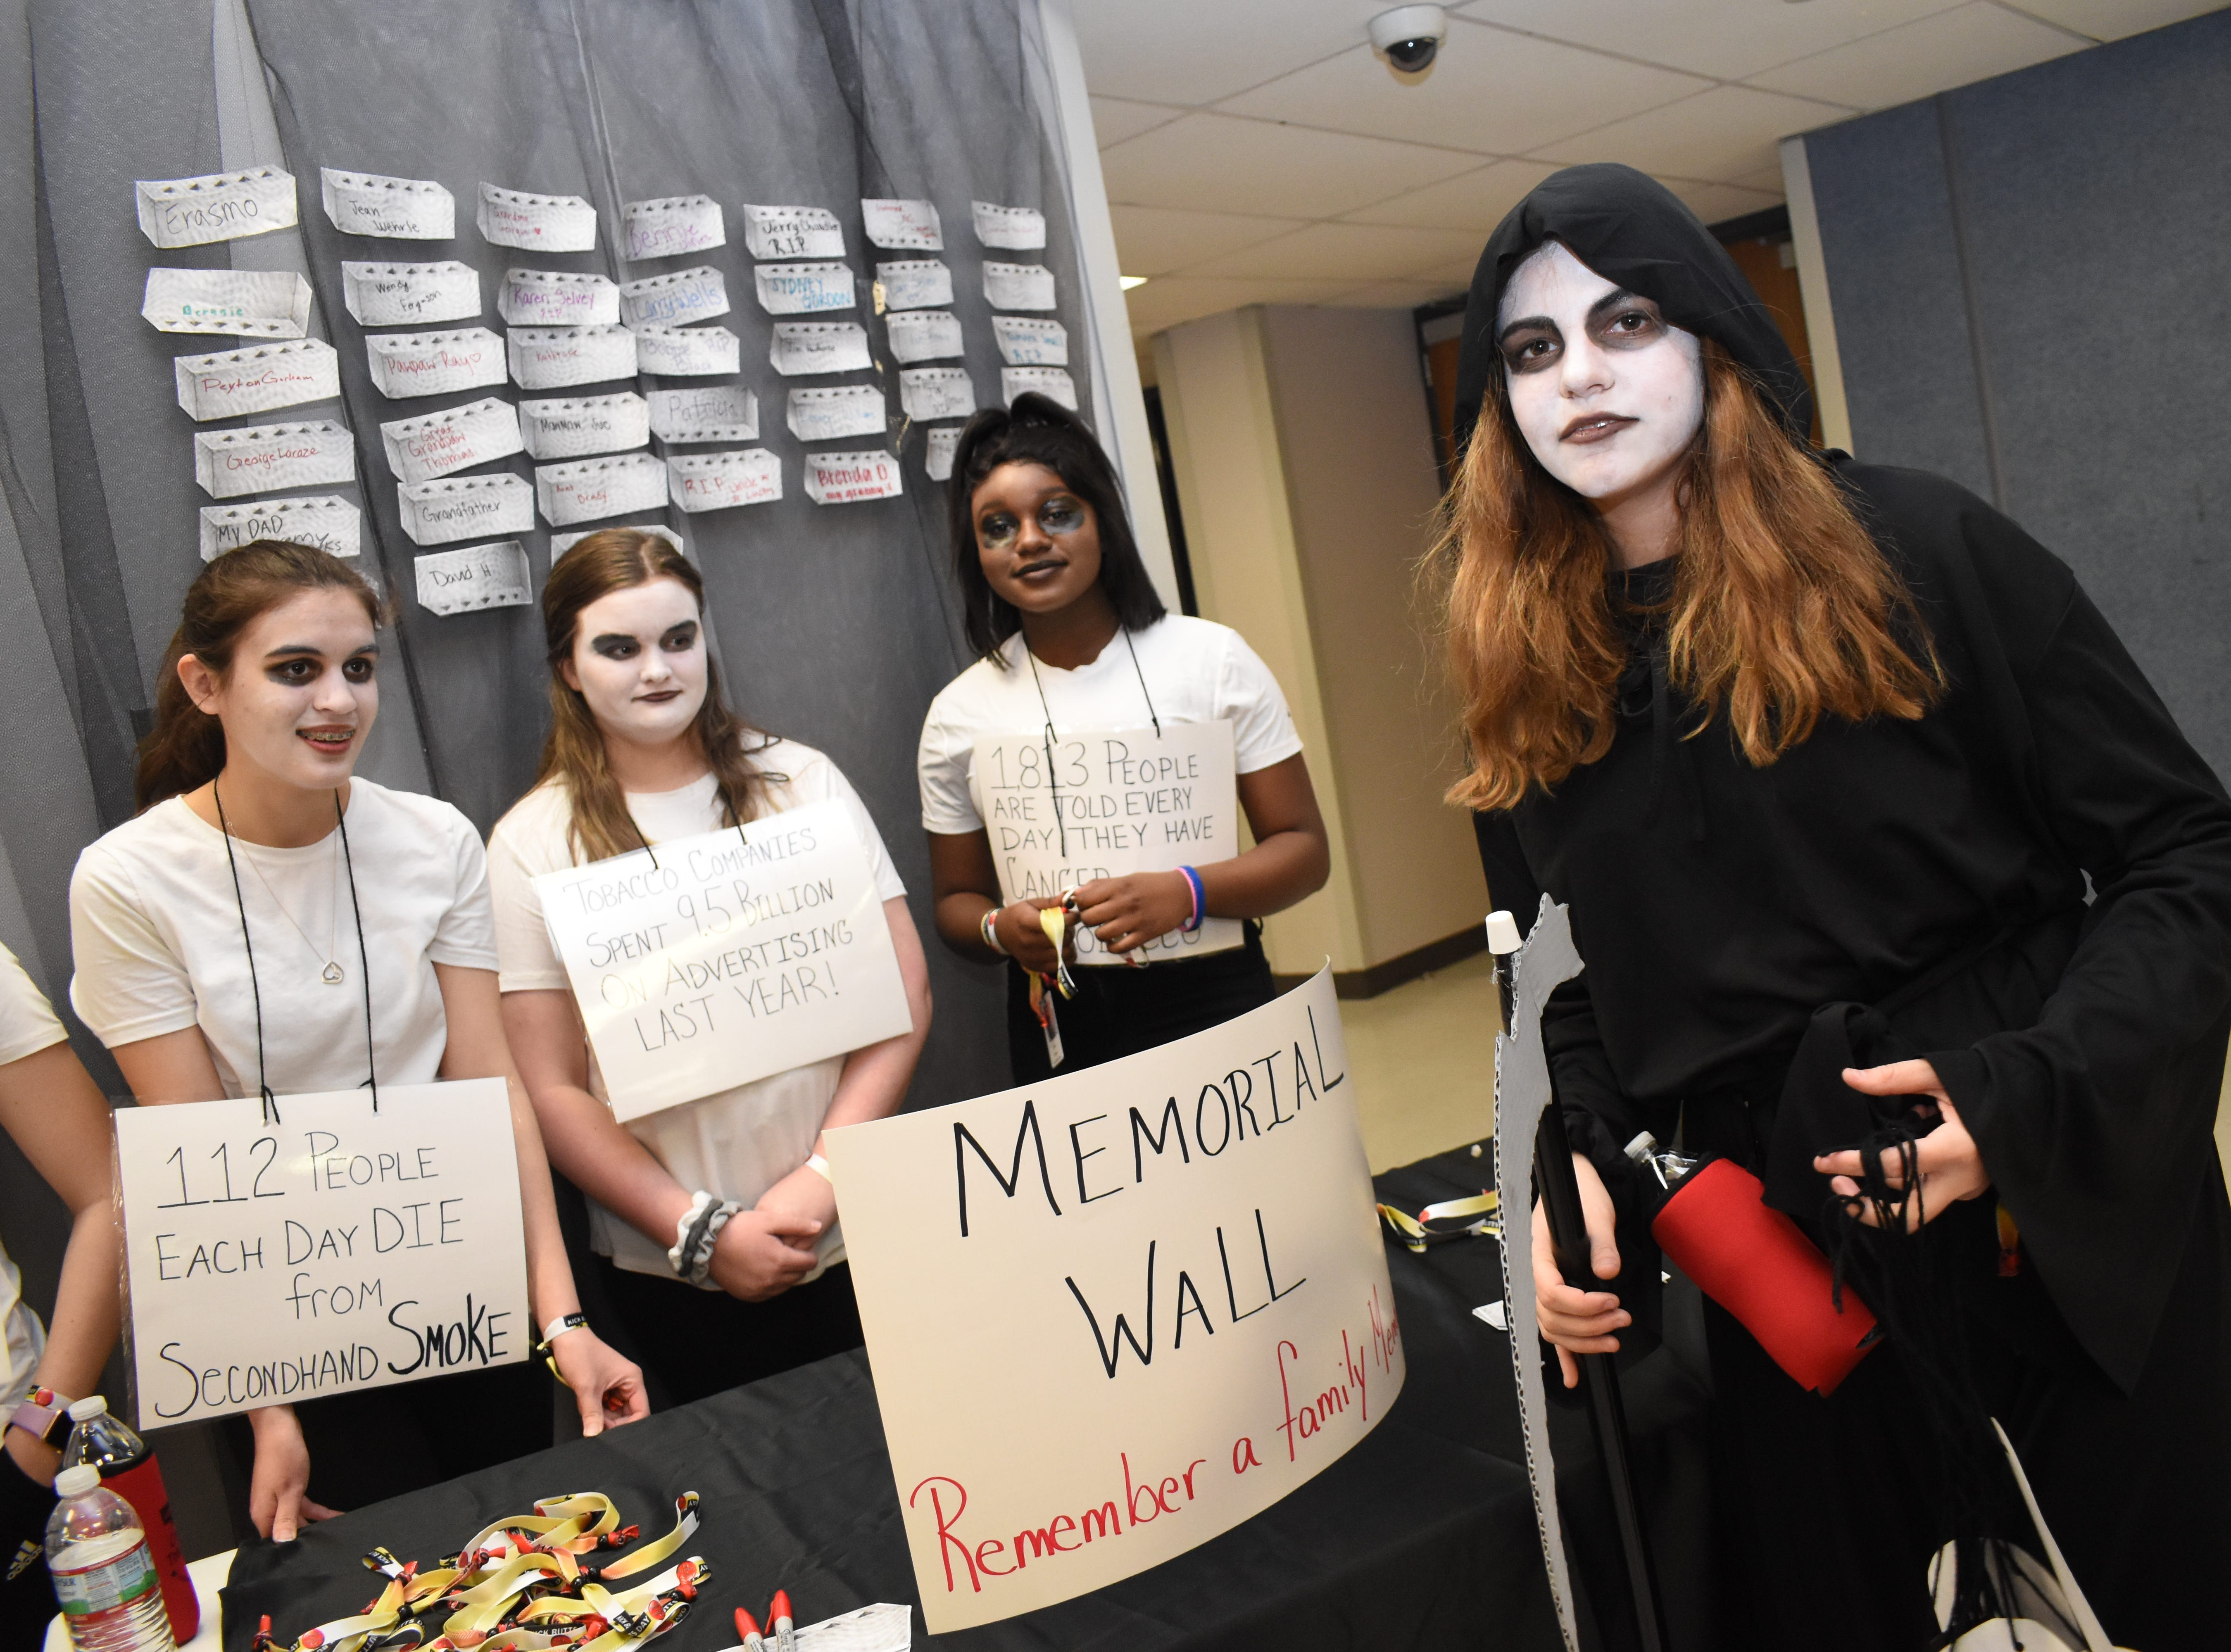 """Kandyce Elliott (far right), dressed as the Grim Reaper as Haley Cohea (back, left). Sydni Walker and Imari Russ wore signs citing information about tobacco use and smoking. All are members of the Living Healthy Club at Tioga High School. The club erected a memorial wall where students could add the name of someone they knew who died from tobacco use. Tioga High School was one of 53 schools in Central Louisiana participating in Kick Butts Day with funding from the Healthy Behaviors School District Partnership Grant from The Rapides Foundation. Kick Butts Day is recognized nationally by young people to raise awareness against the use of tobacco products. A press release from The Rapides Foundation states, """"The Healthy Behaviors School District Partnership Grant seeks to prevent and reduce tobacco use, substance and alcohol abuse, and overweight/obesity by focusing on changing policy, social norms and environments. Grant activities are based on best and promising practices to create comprehensive school- and community-based awareness and prevention programs in order to positively impact Central Louisiana students, educators and staff. The goal is to provide the knowledge and skills necessary to make better and informed behavior decisions leading to healthier lives."""""""